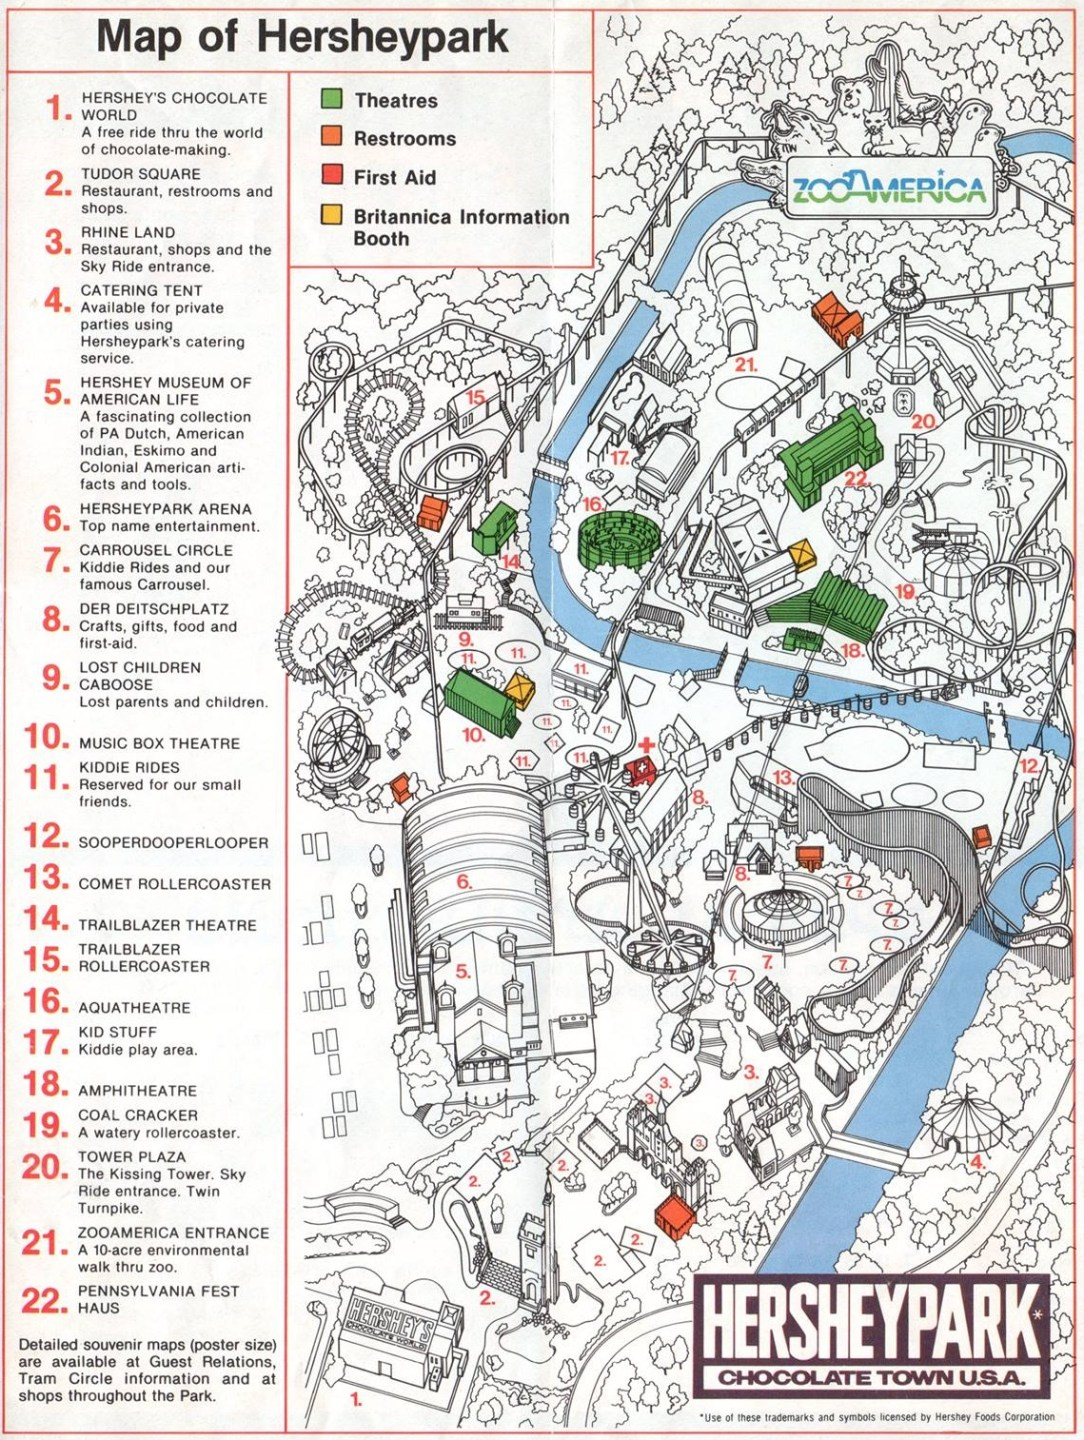 1981 Hersheypark map